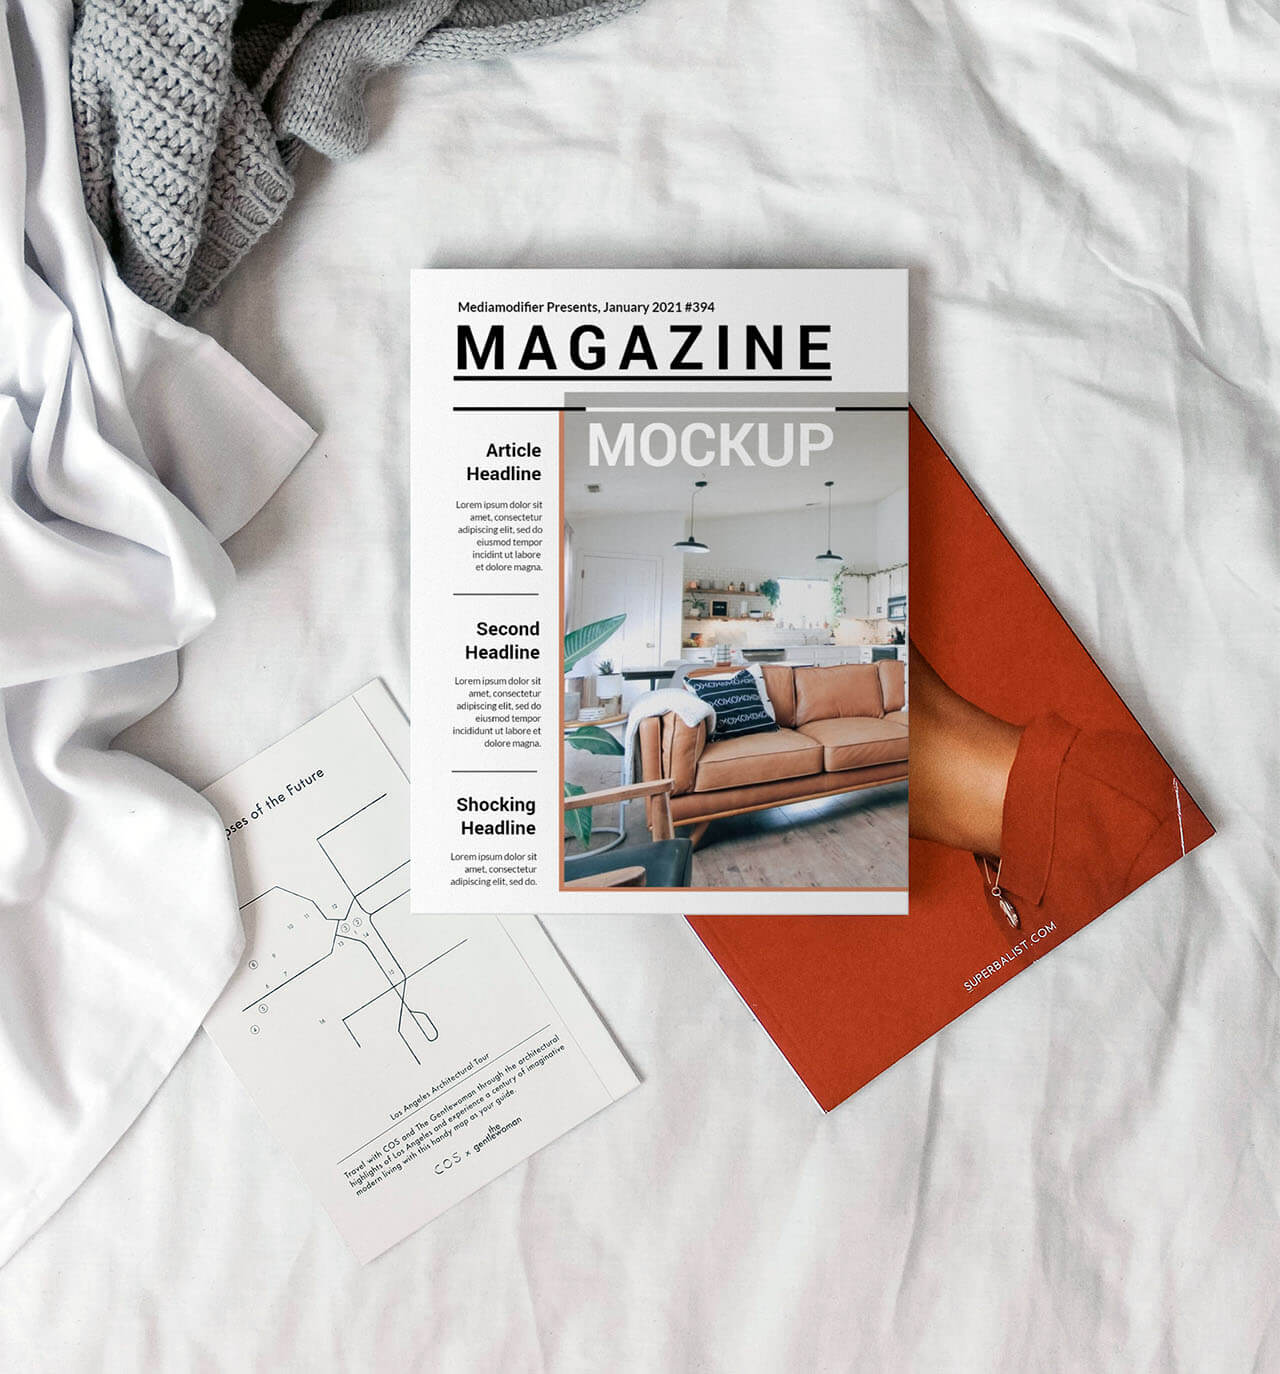 Diseño de revistas: 23-magazine-cover-on-bed-mockup-template